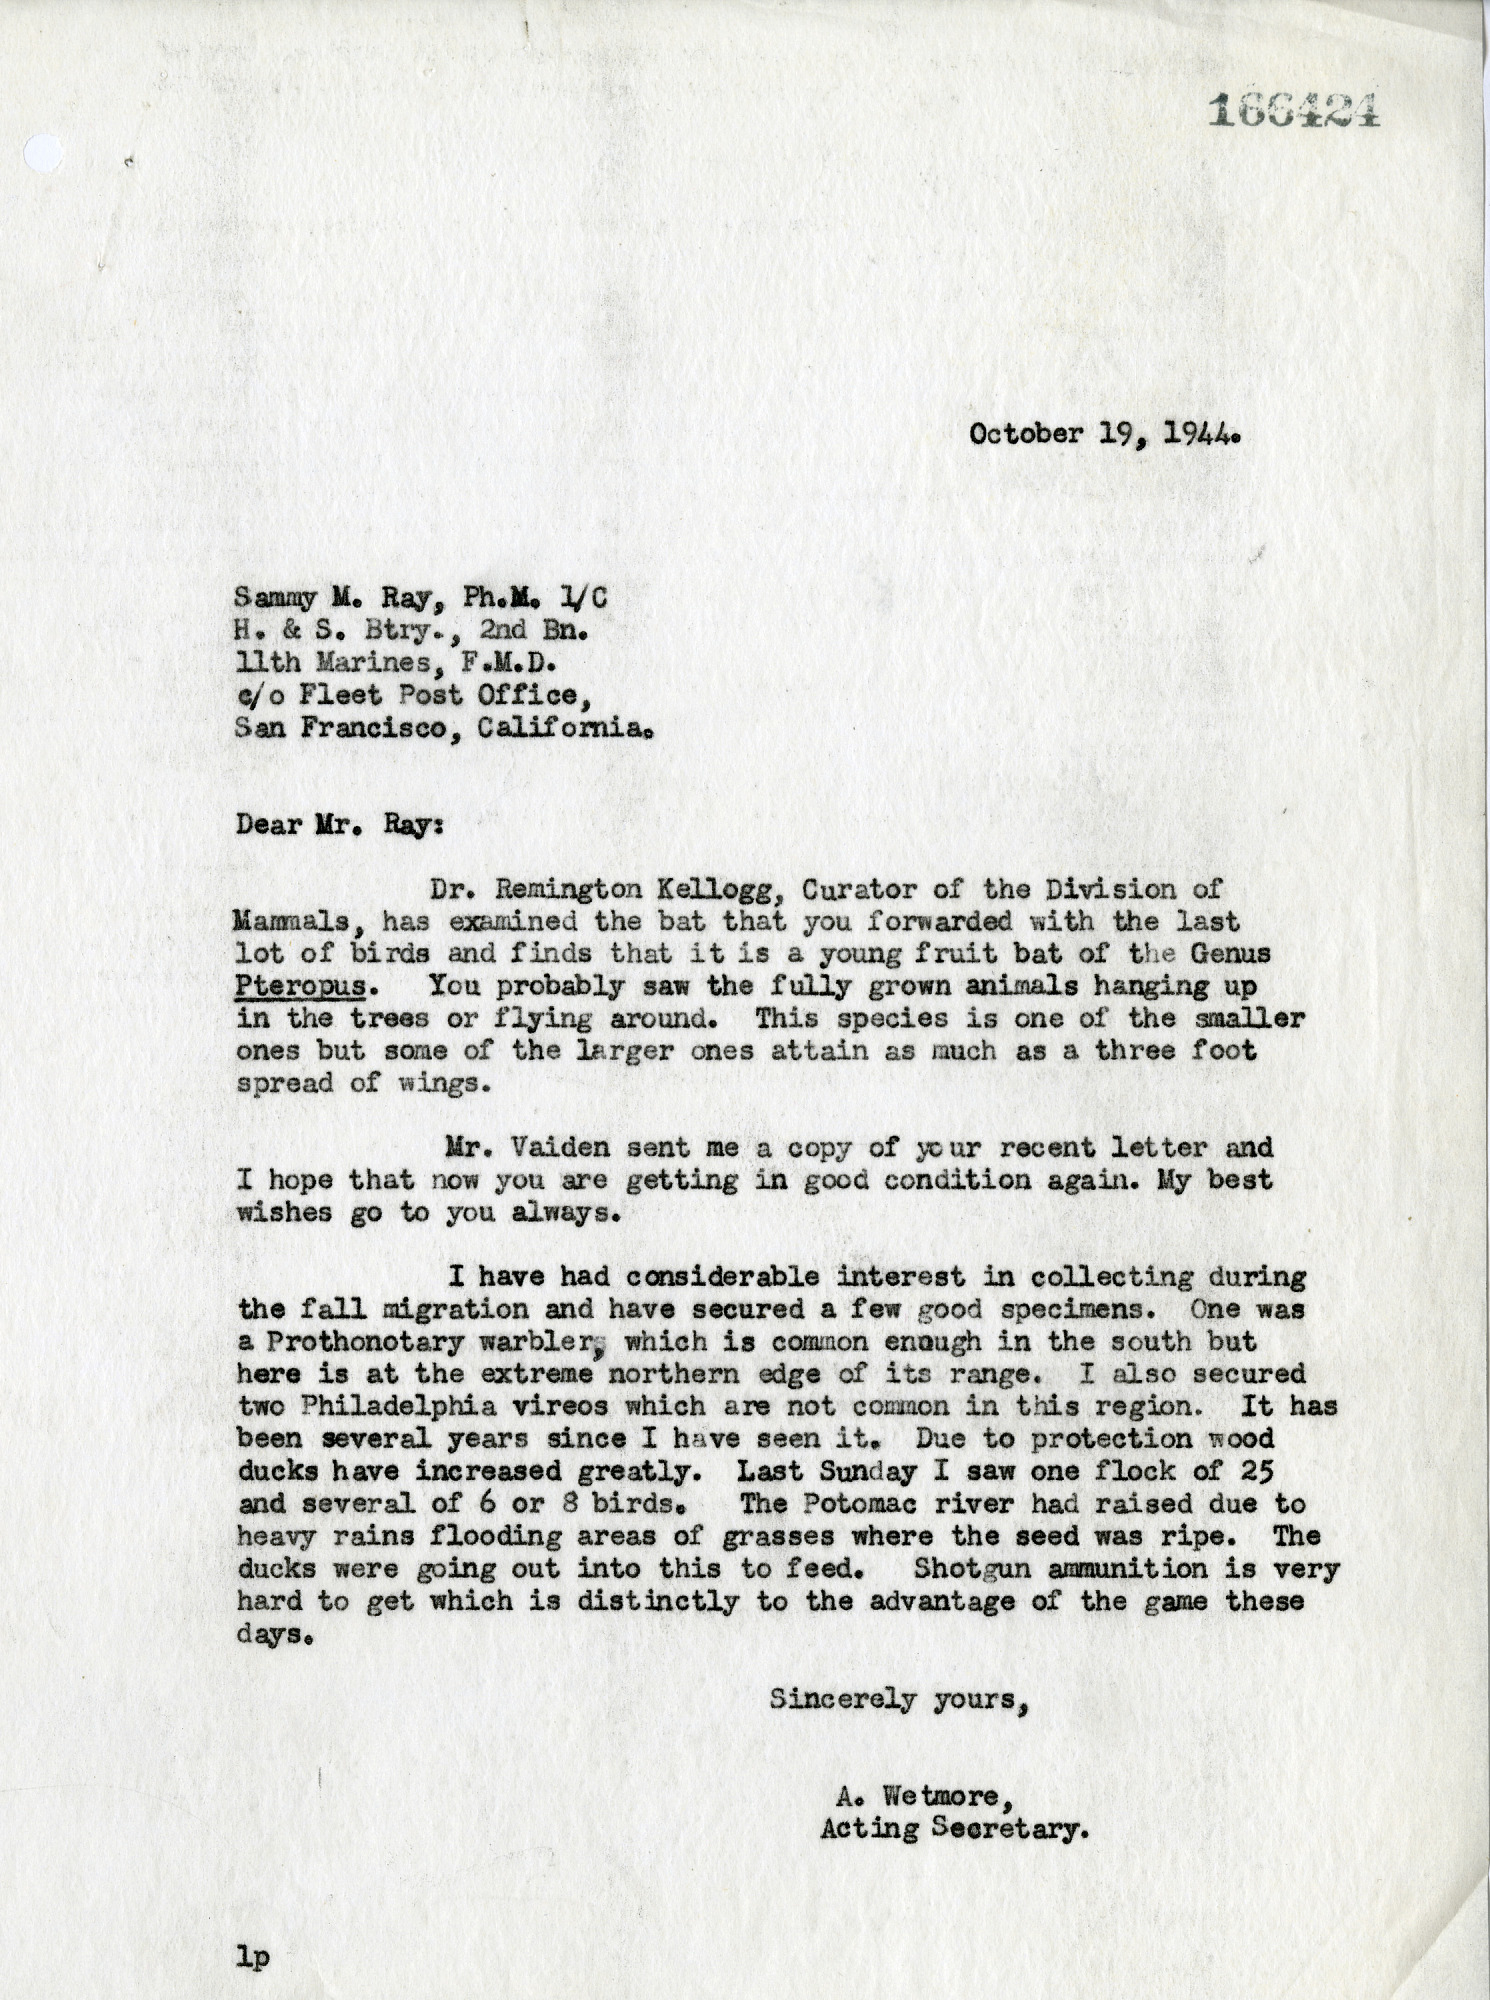 Letter from Alexander Wetmore to Sammy Ray